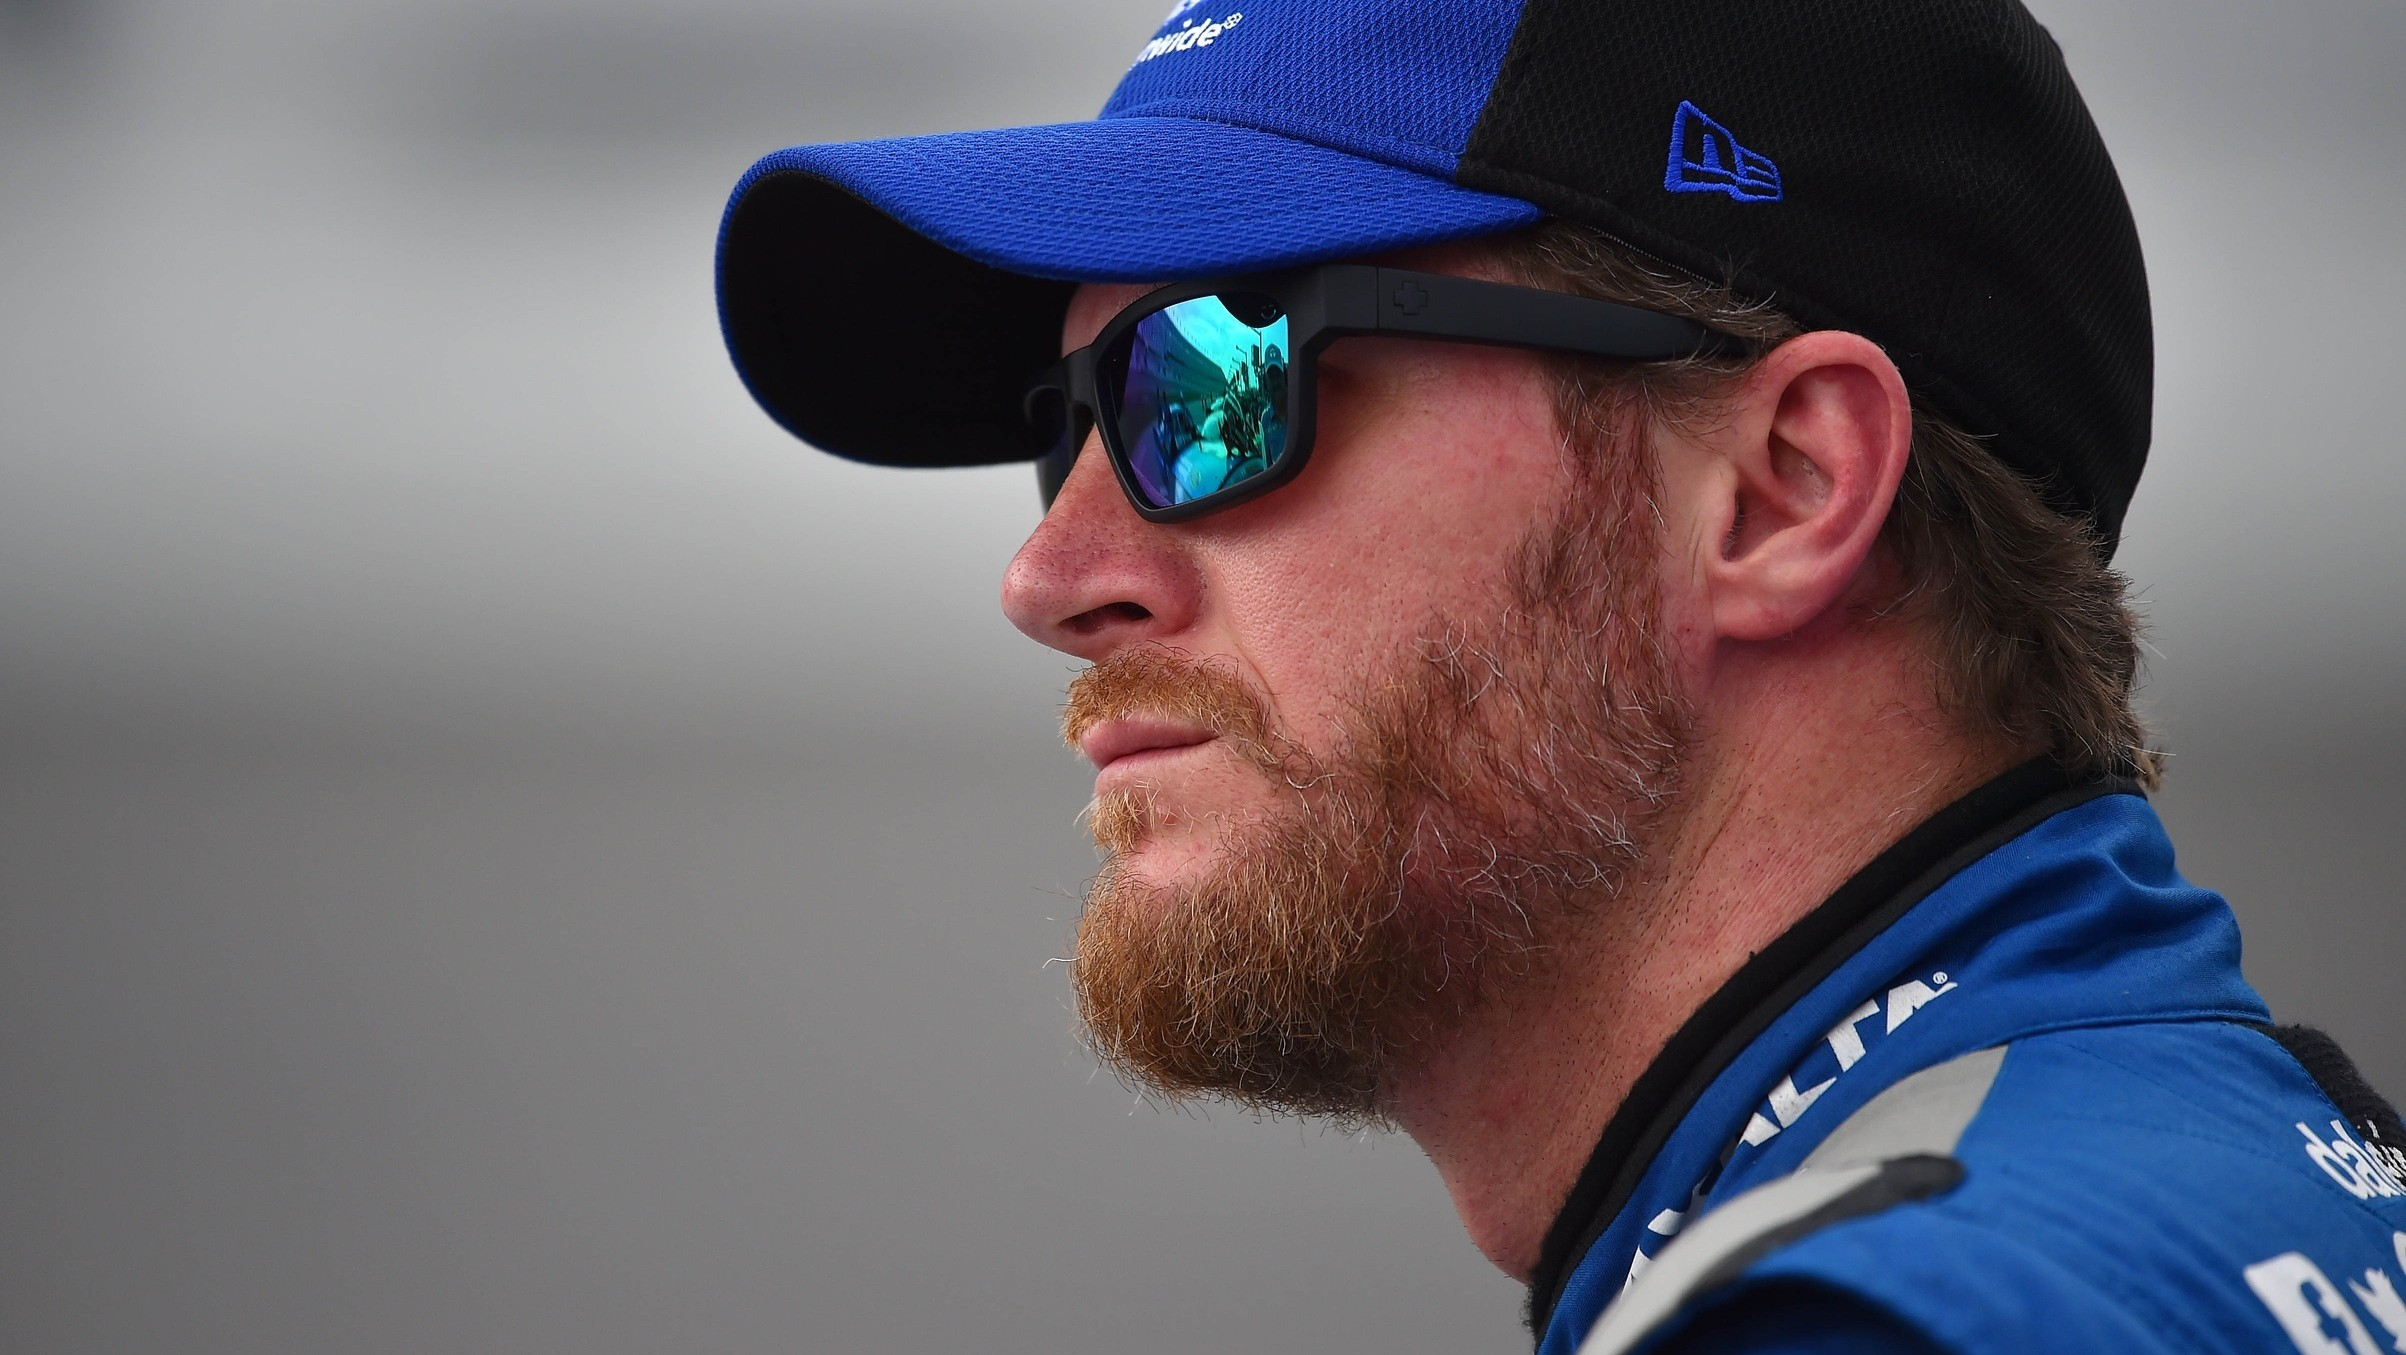 Dale Earnhardt Jr. to Miss Remainder of 2016 Season Due to Concussion Symptoms